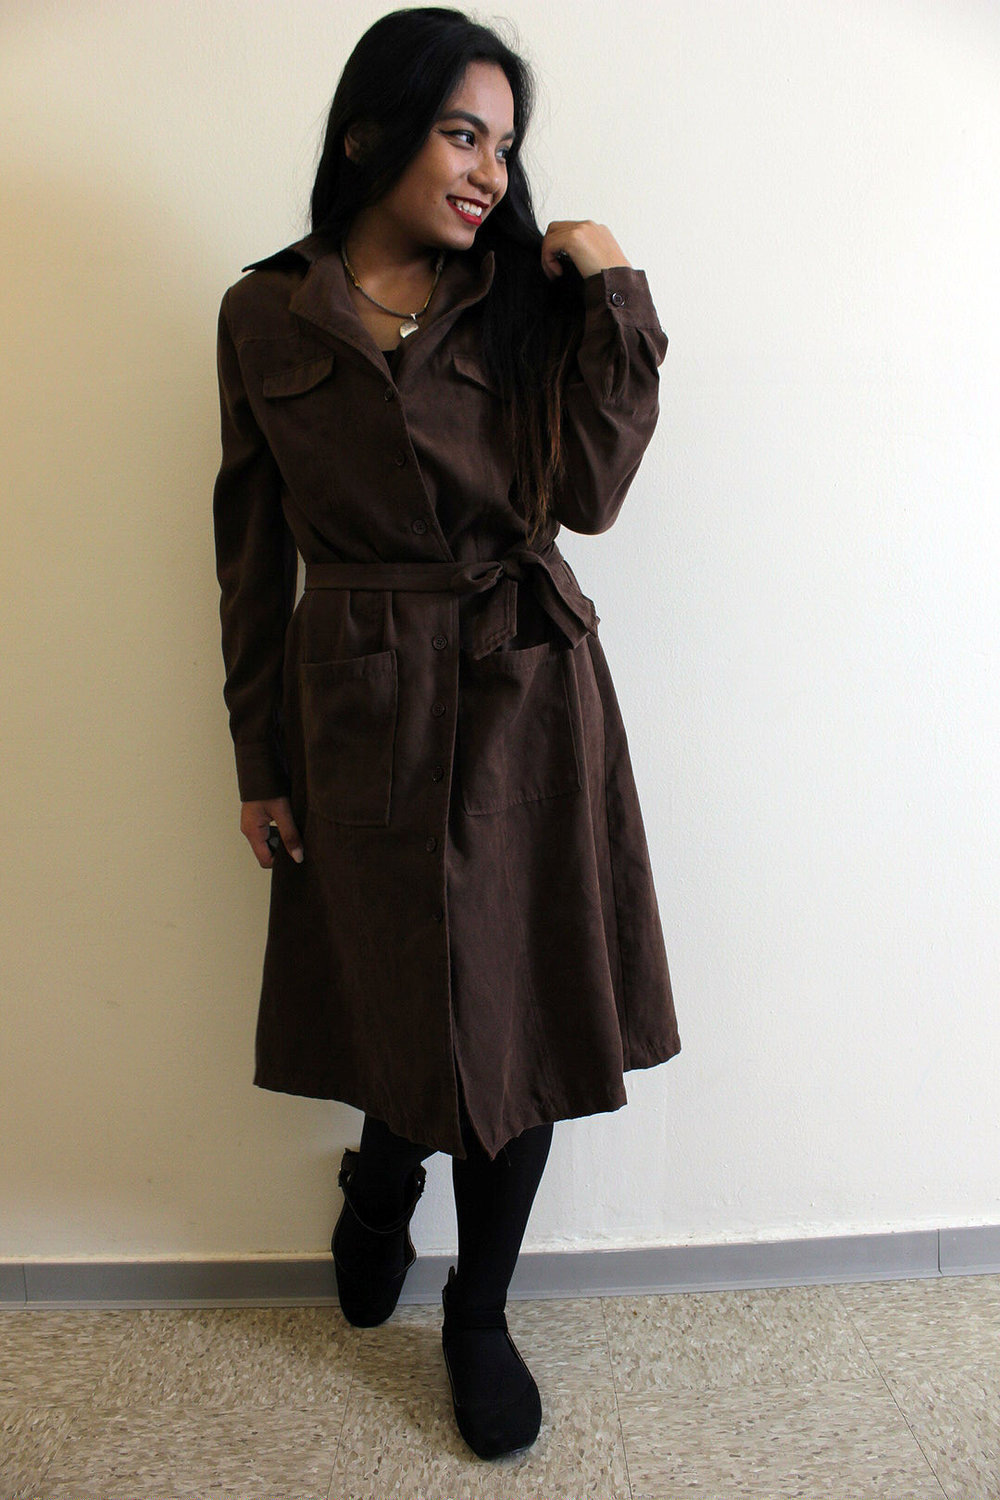 Trench-Coat-Dresses-Work-Appropriate-Office-Wear-Blogger-Style-LINDA-TENCHITRAN-12-1616x1080.jpg